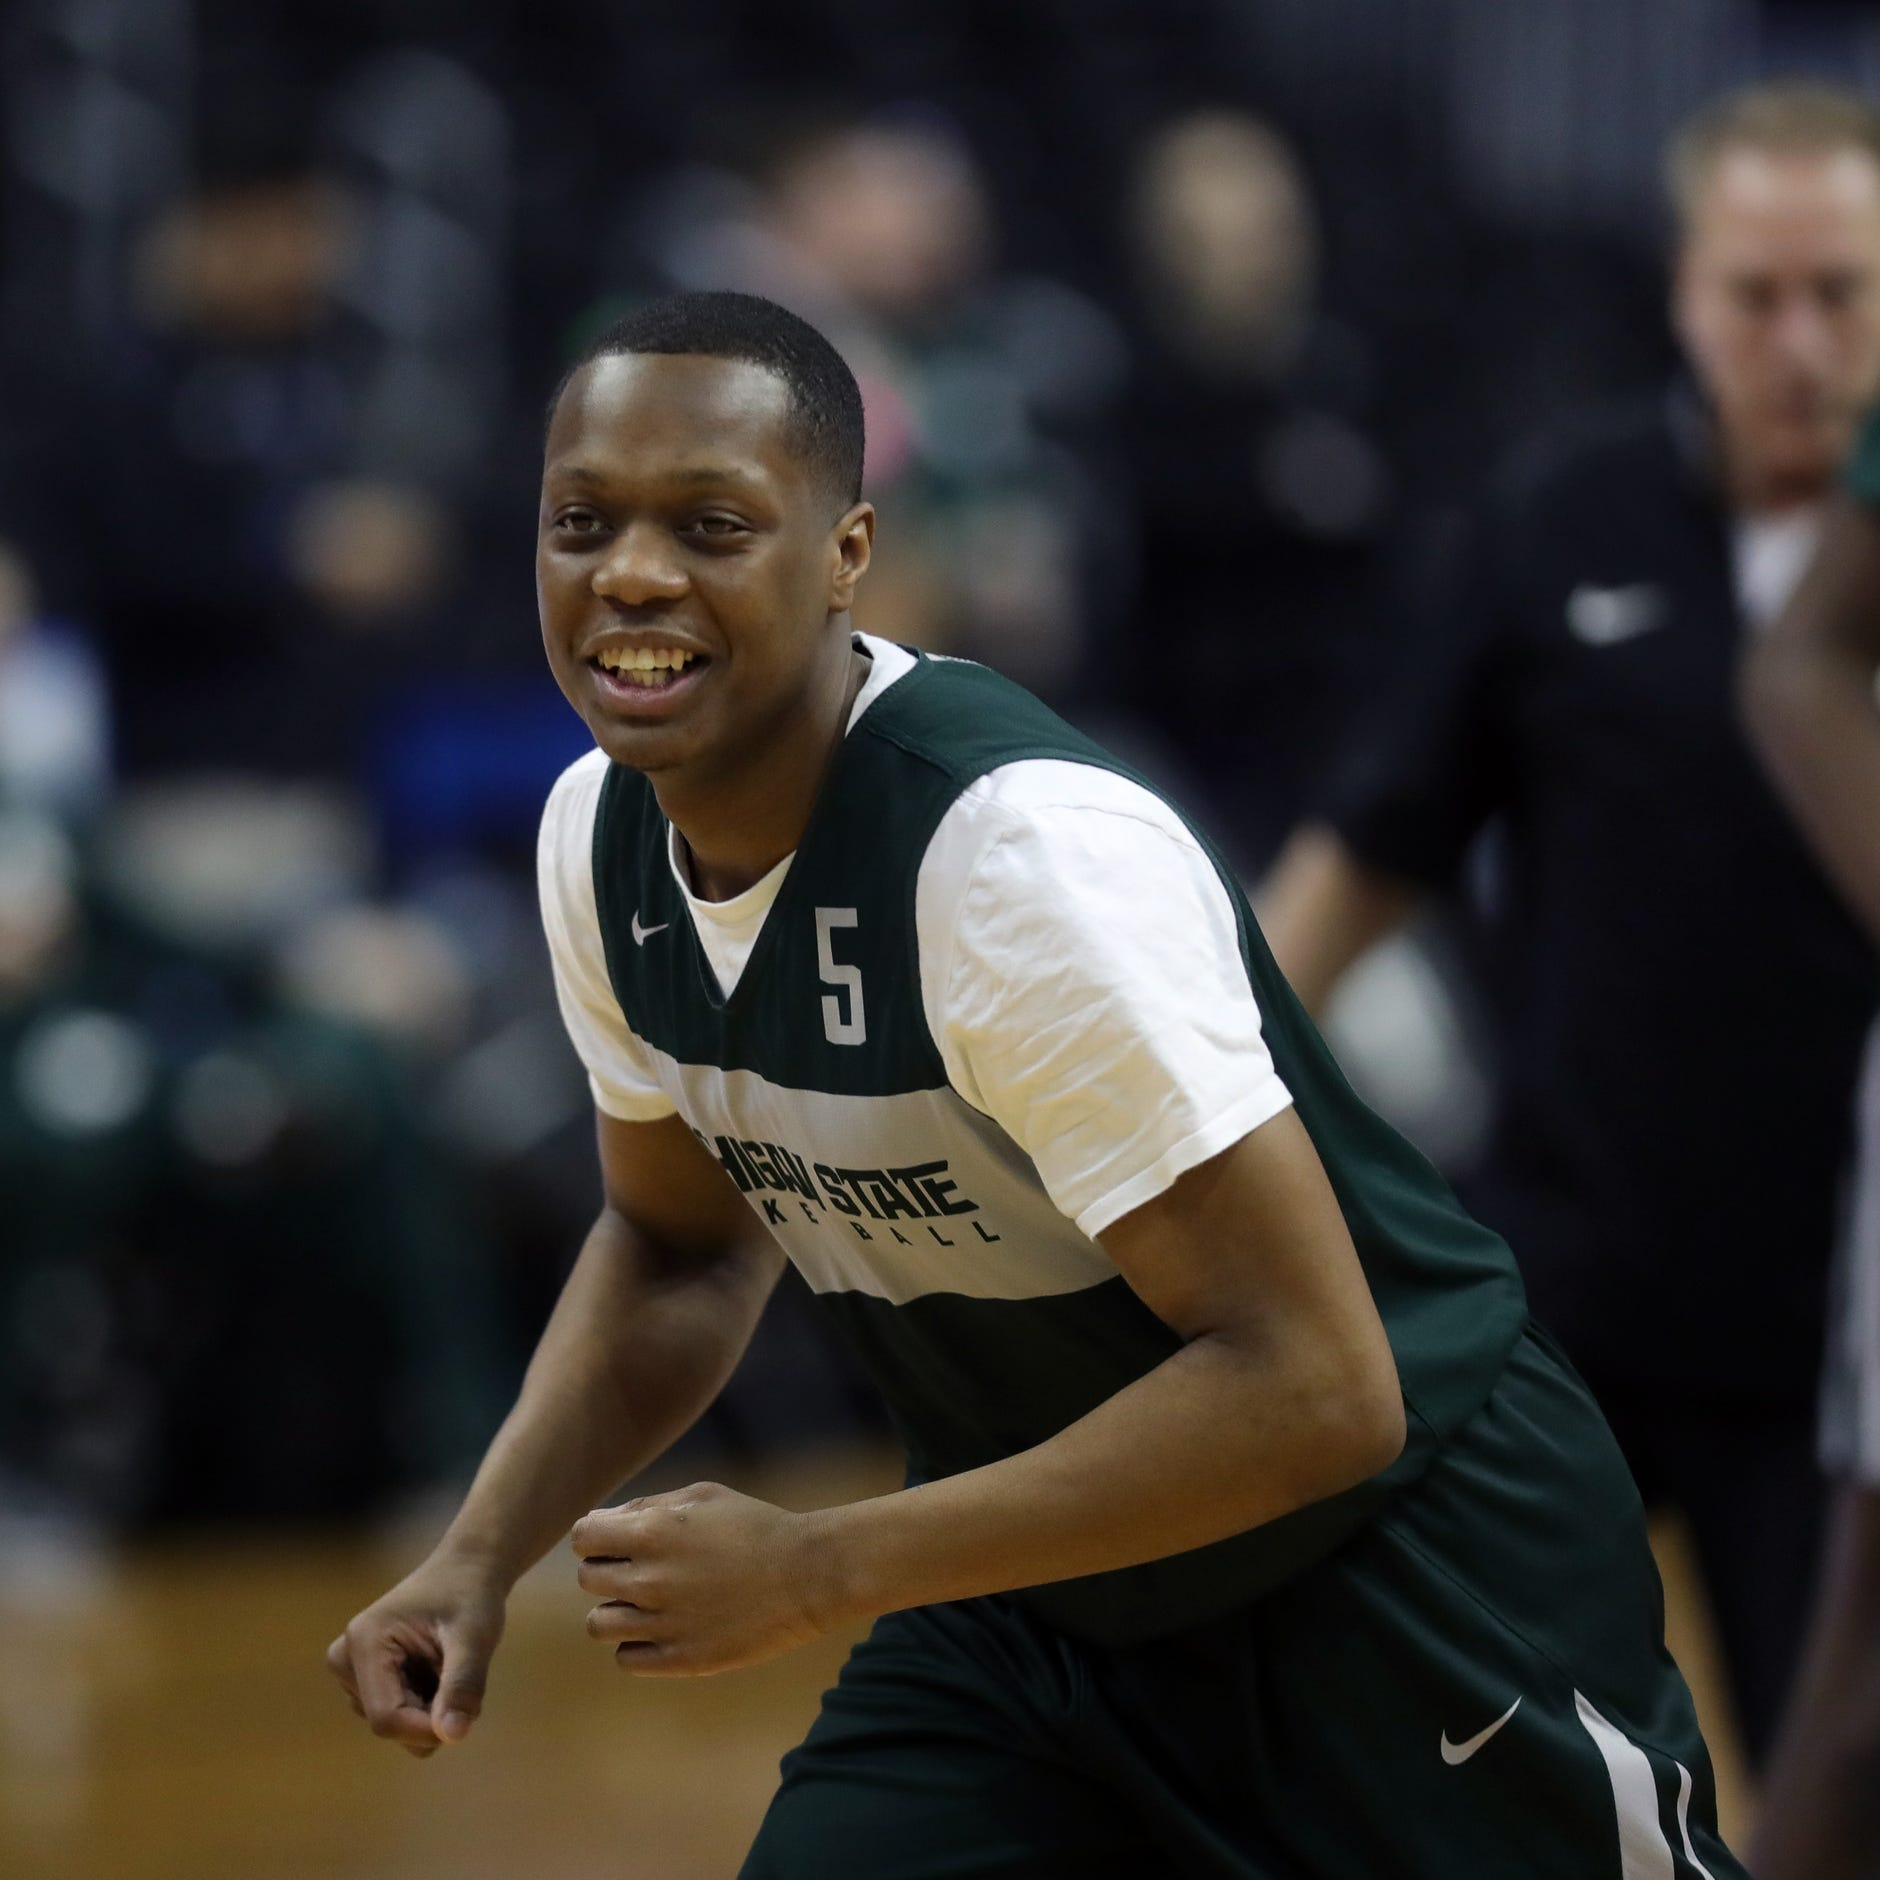 LSU wants Michigan State basketball in foul trouble. Here's how to avoid it